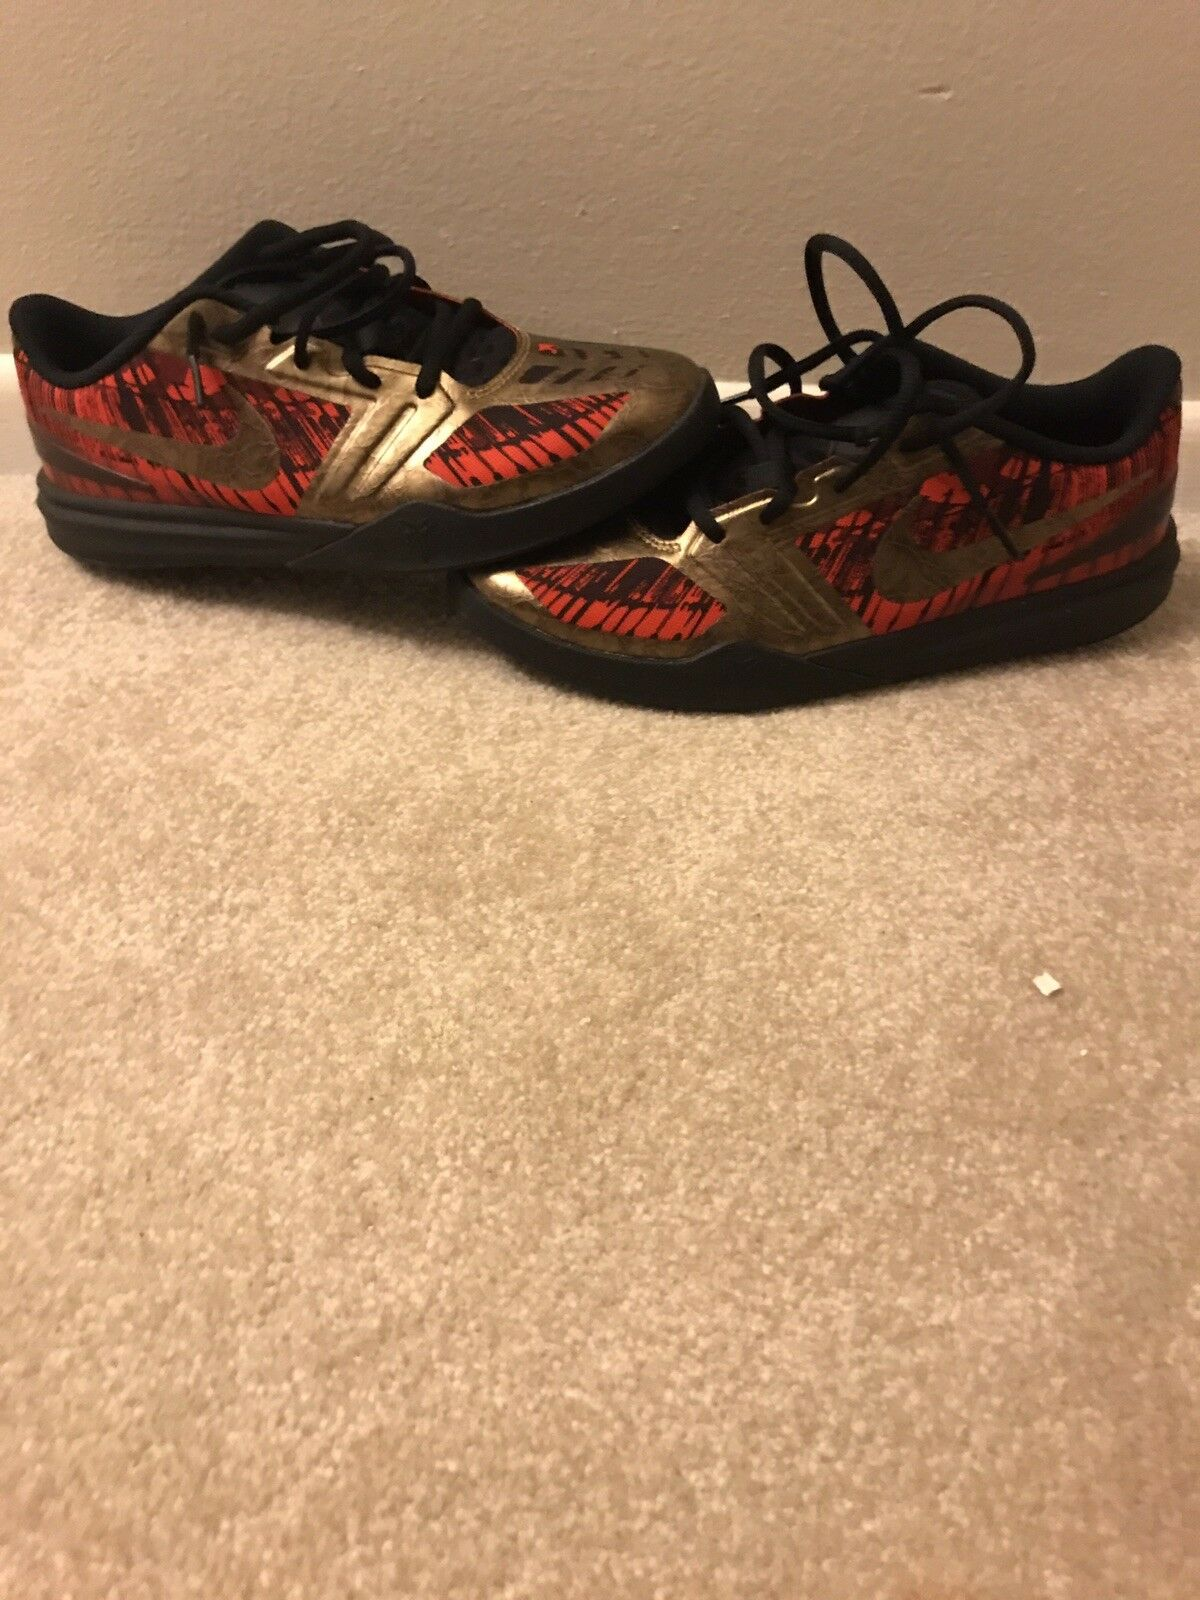 New shoes for men and women, limited time discount NIKE KOBE  BLACK/RED/GOLD YOUTH SIZE 7 IN GREAT CONDITION